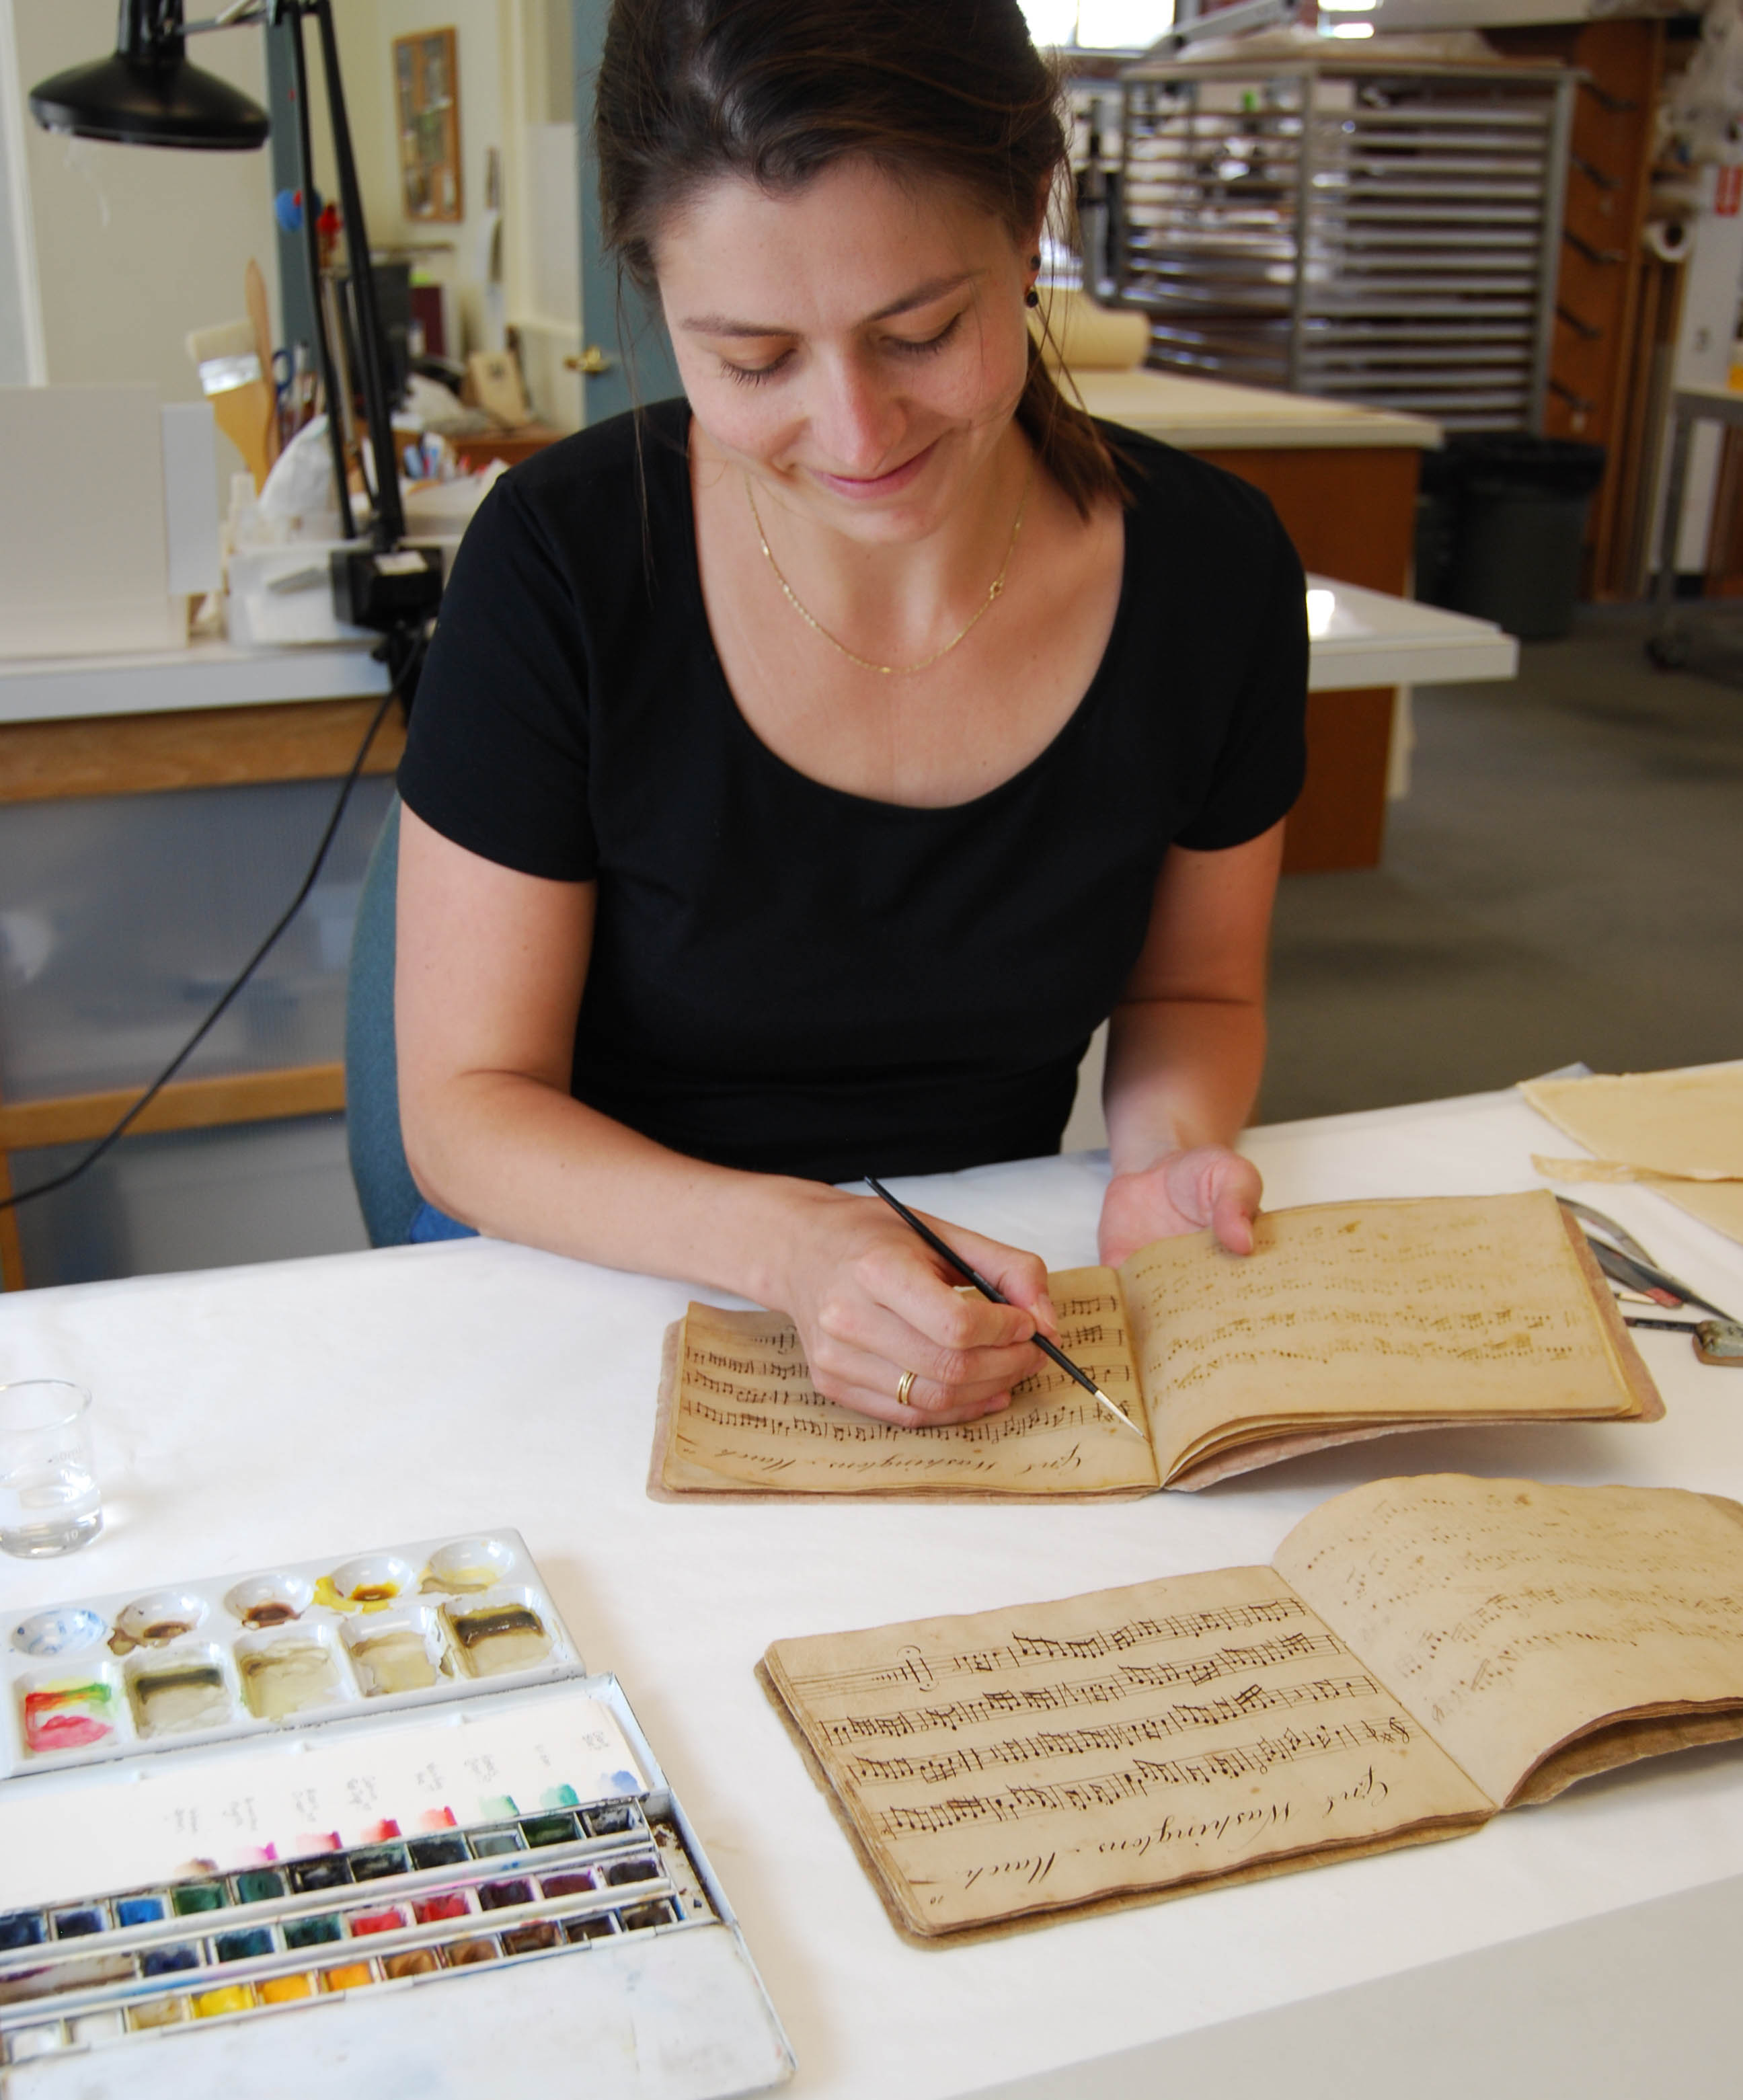 Conservator tones a page of a facsimile book